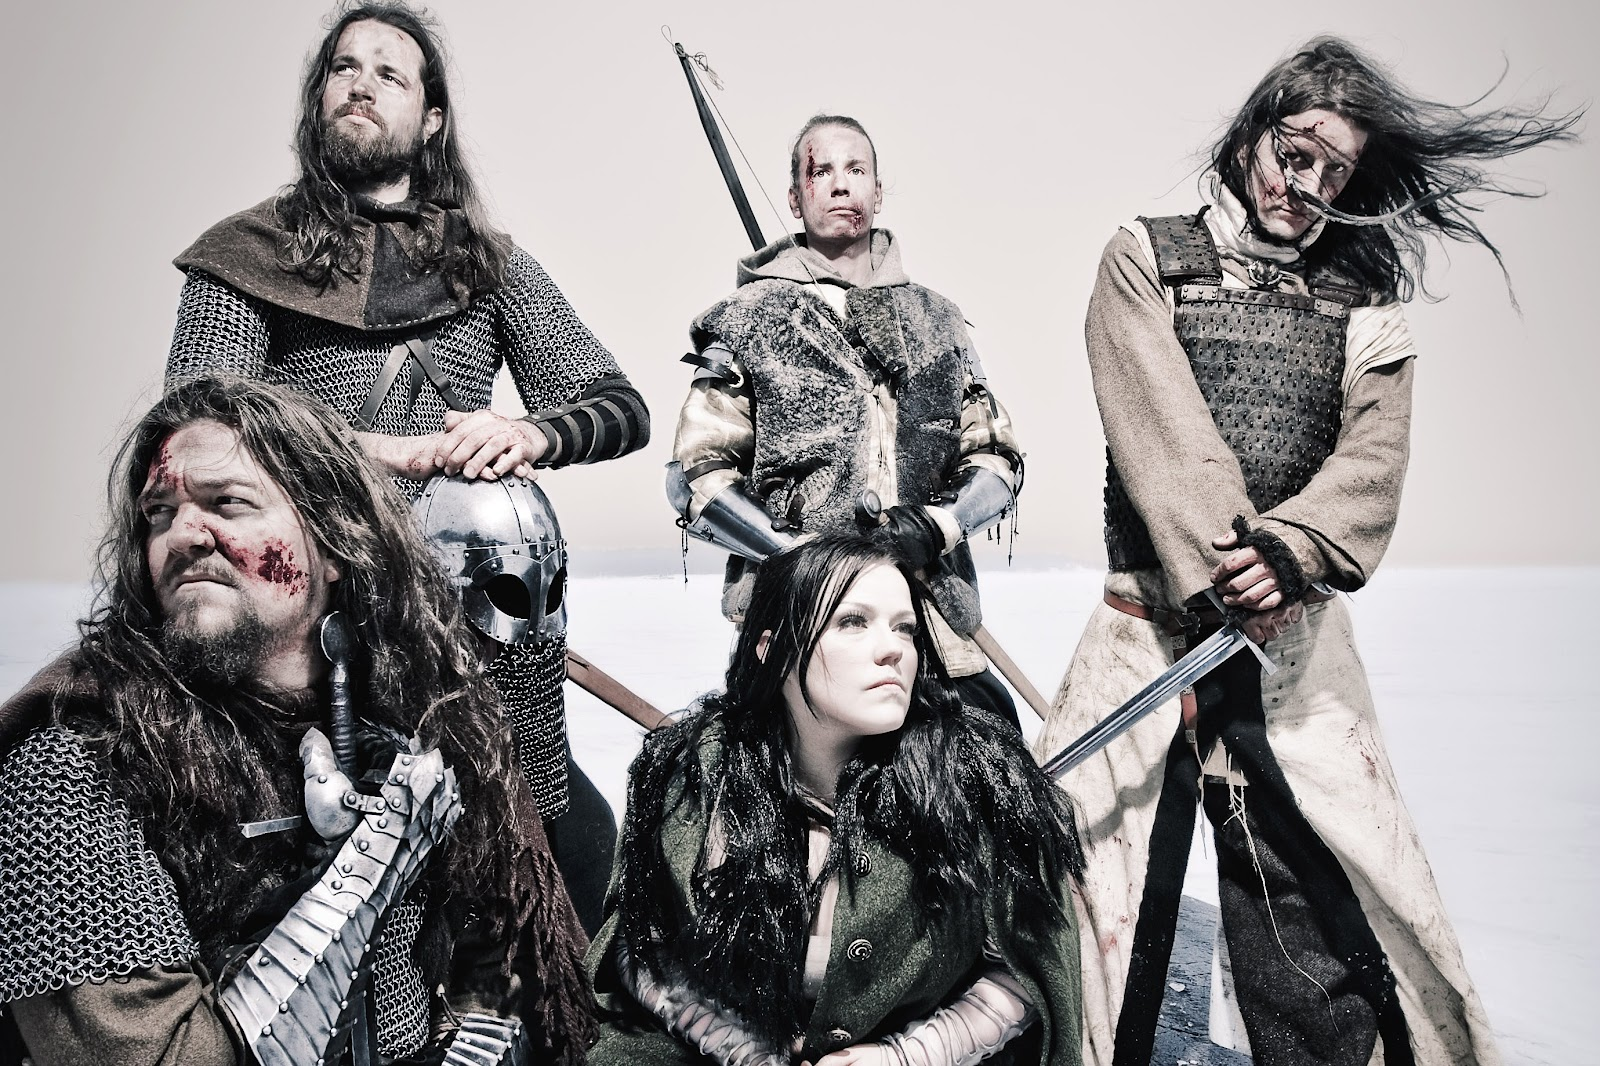 Sirens of Darkness: List of Female Metal Bands - Part 5